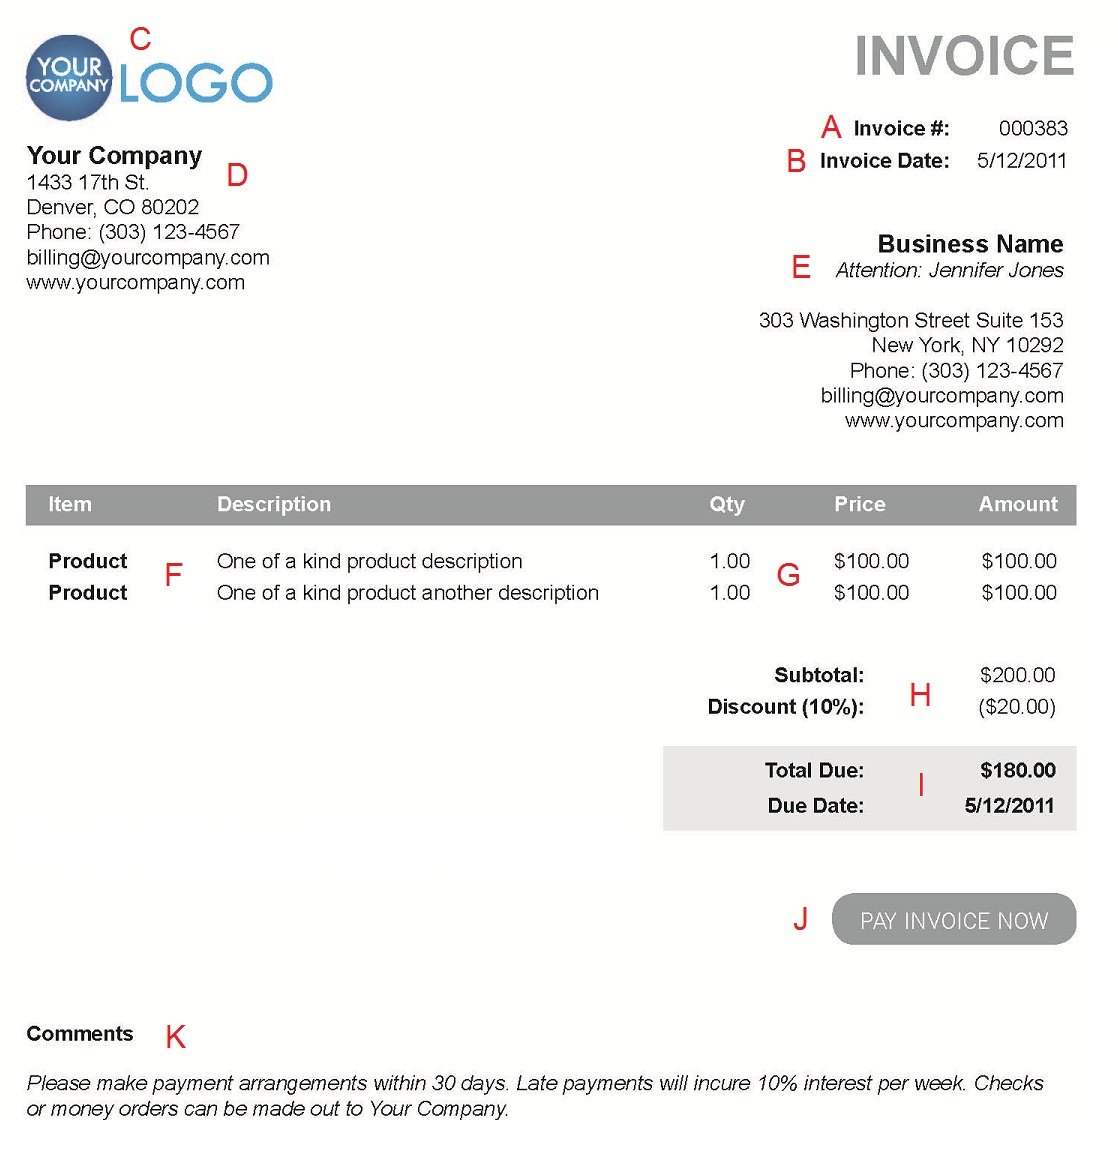 Thassosus  Surprising The  Different Sections Of An Electronic Payment Invoice With Remarkable A  With Endearing Receipt For Payment Received Also Free Rental Receipt Template In Addition How To Make A Receipt On Word And Thunderbird Read Receipt As Well As Meatloaf Receipts Additionally Certified Return Receipt Tracking From Paysimplecom With Thassosus  Remarkable The  Different Sections Of An Electronic Payment Invoice With Endearing A  And Surprising Receipt For Payment Received Also Free Rental Receipt Template In Addition How To Make A Receipt On Word From Paysimplecom